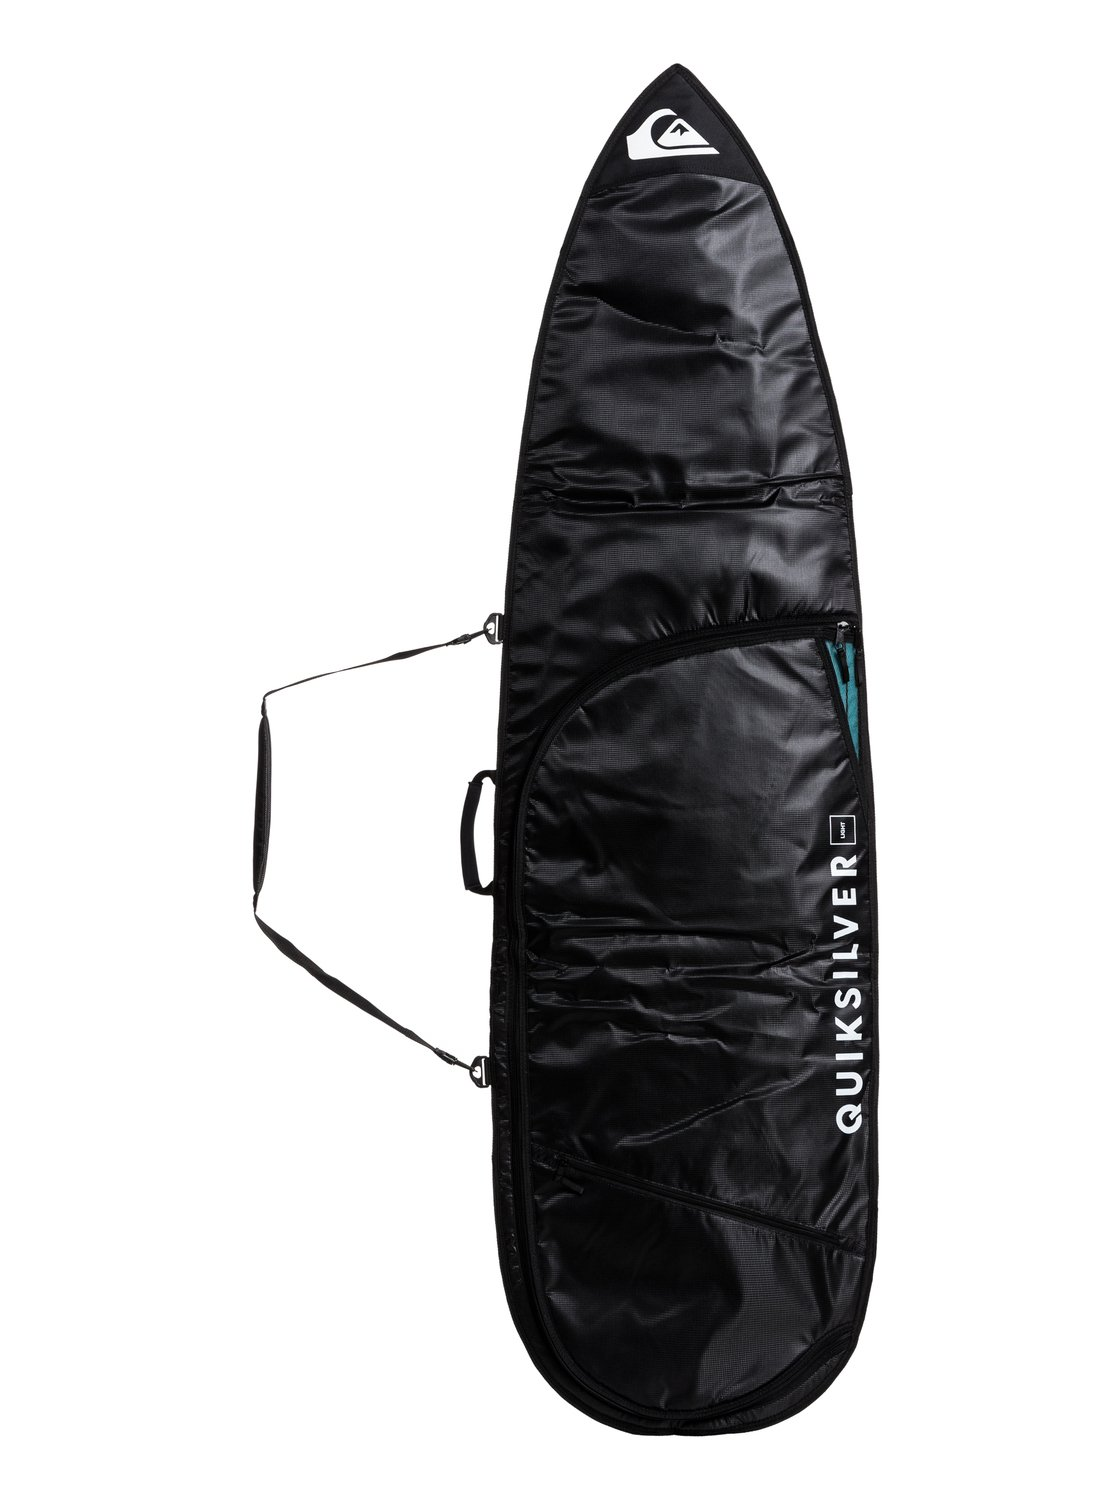 4b16f6af14 QS Ultimate Light Short 6'0 - Board Bag